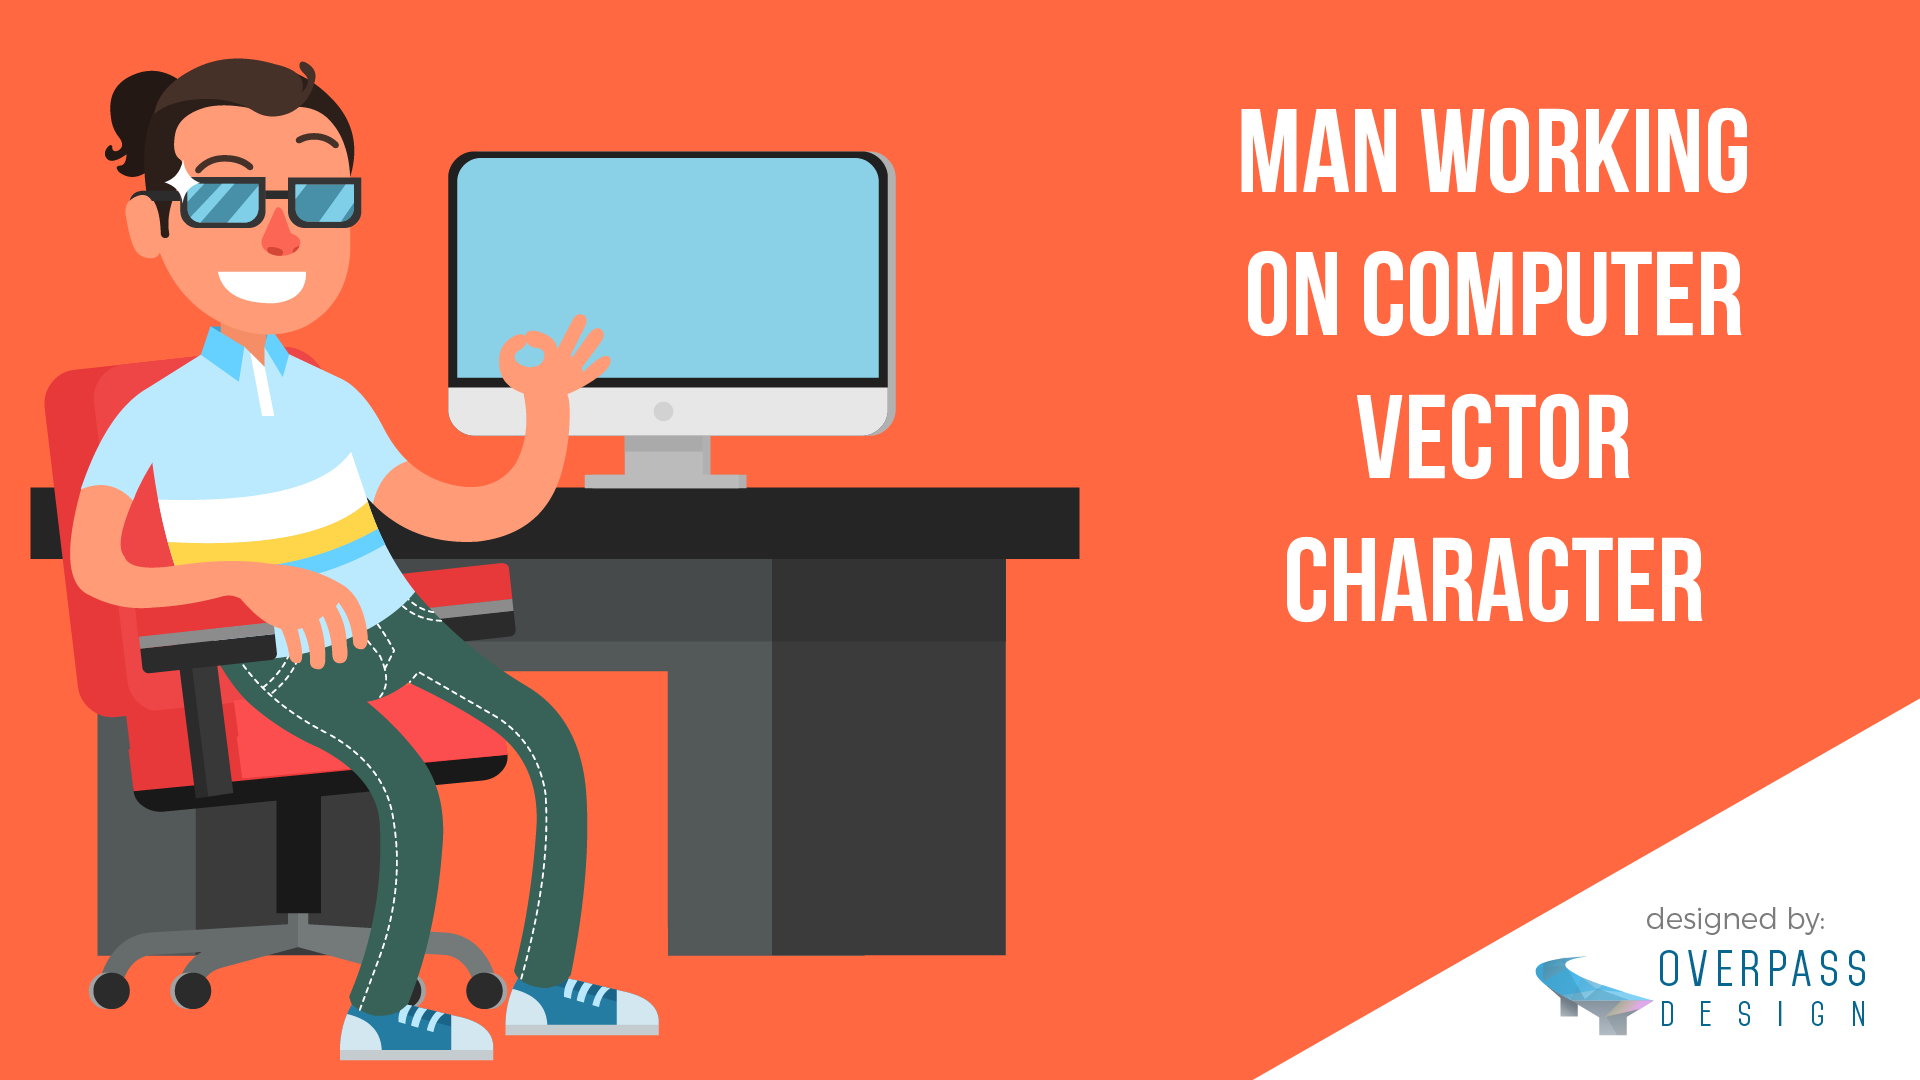 1920x1080 Freebie Man Working On Computer Vector Character